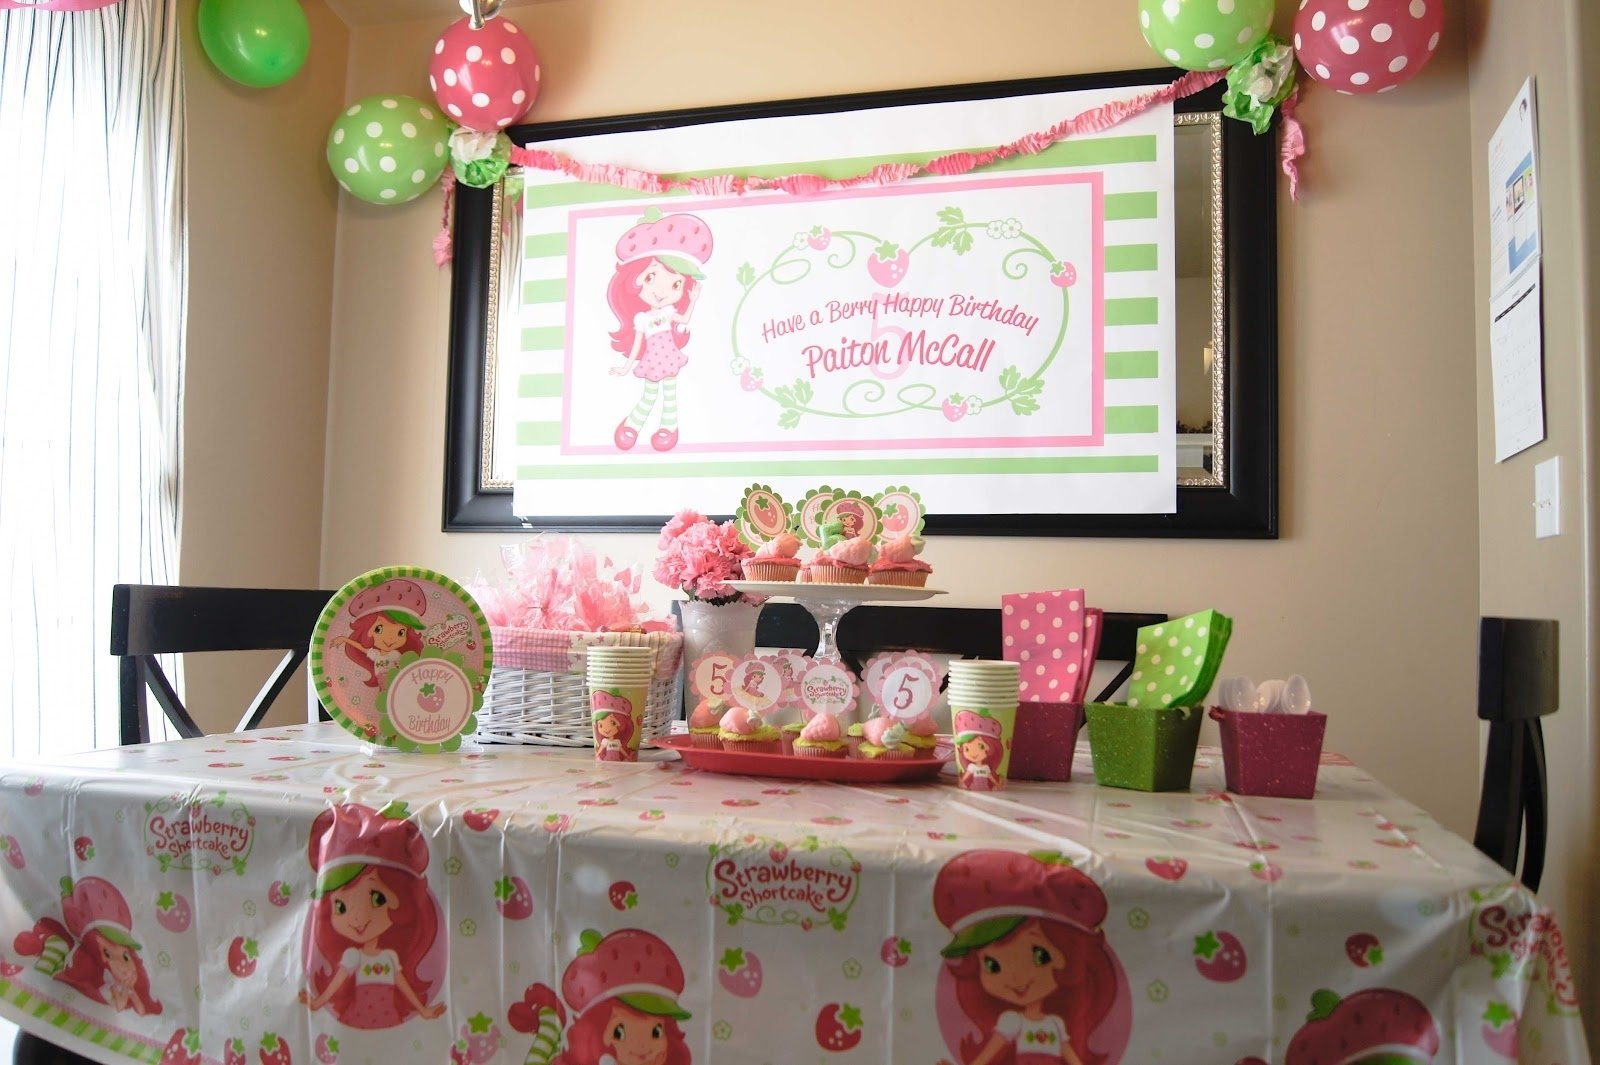 10 Nice 16 Year Old Birthday Party Ideas k i s s keep it simple sister the secret to a simple